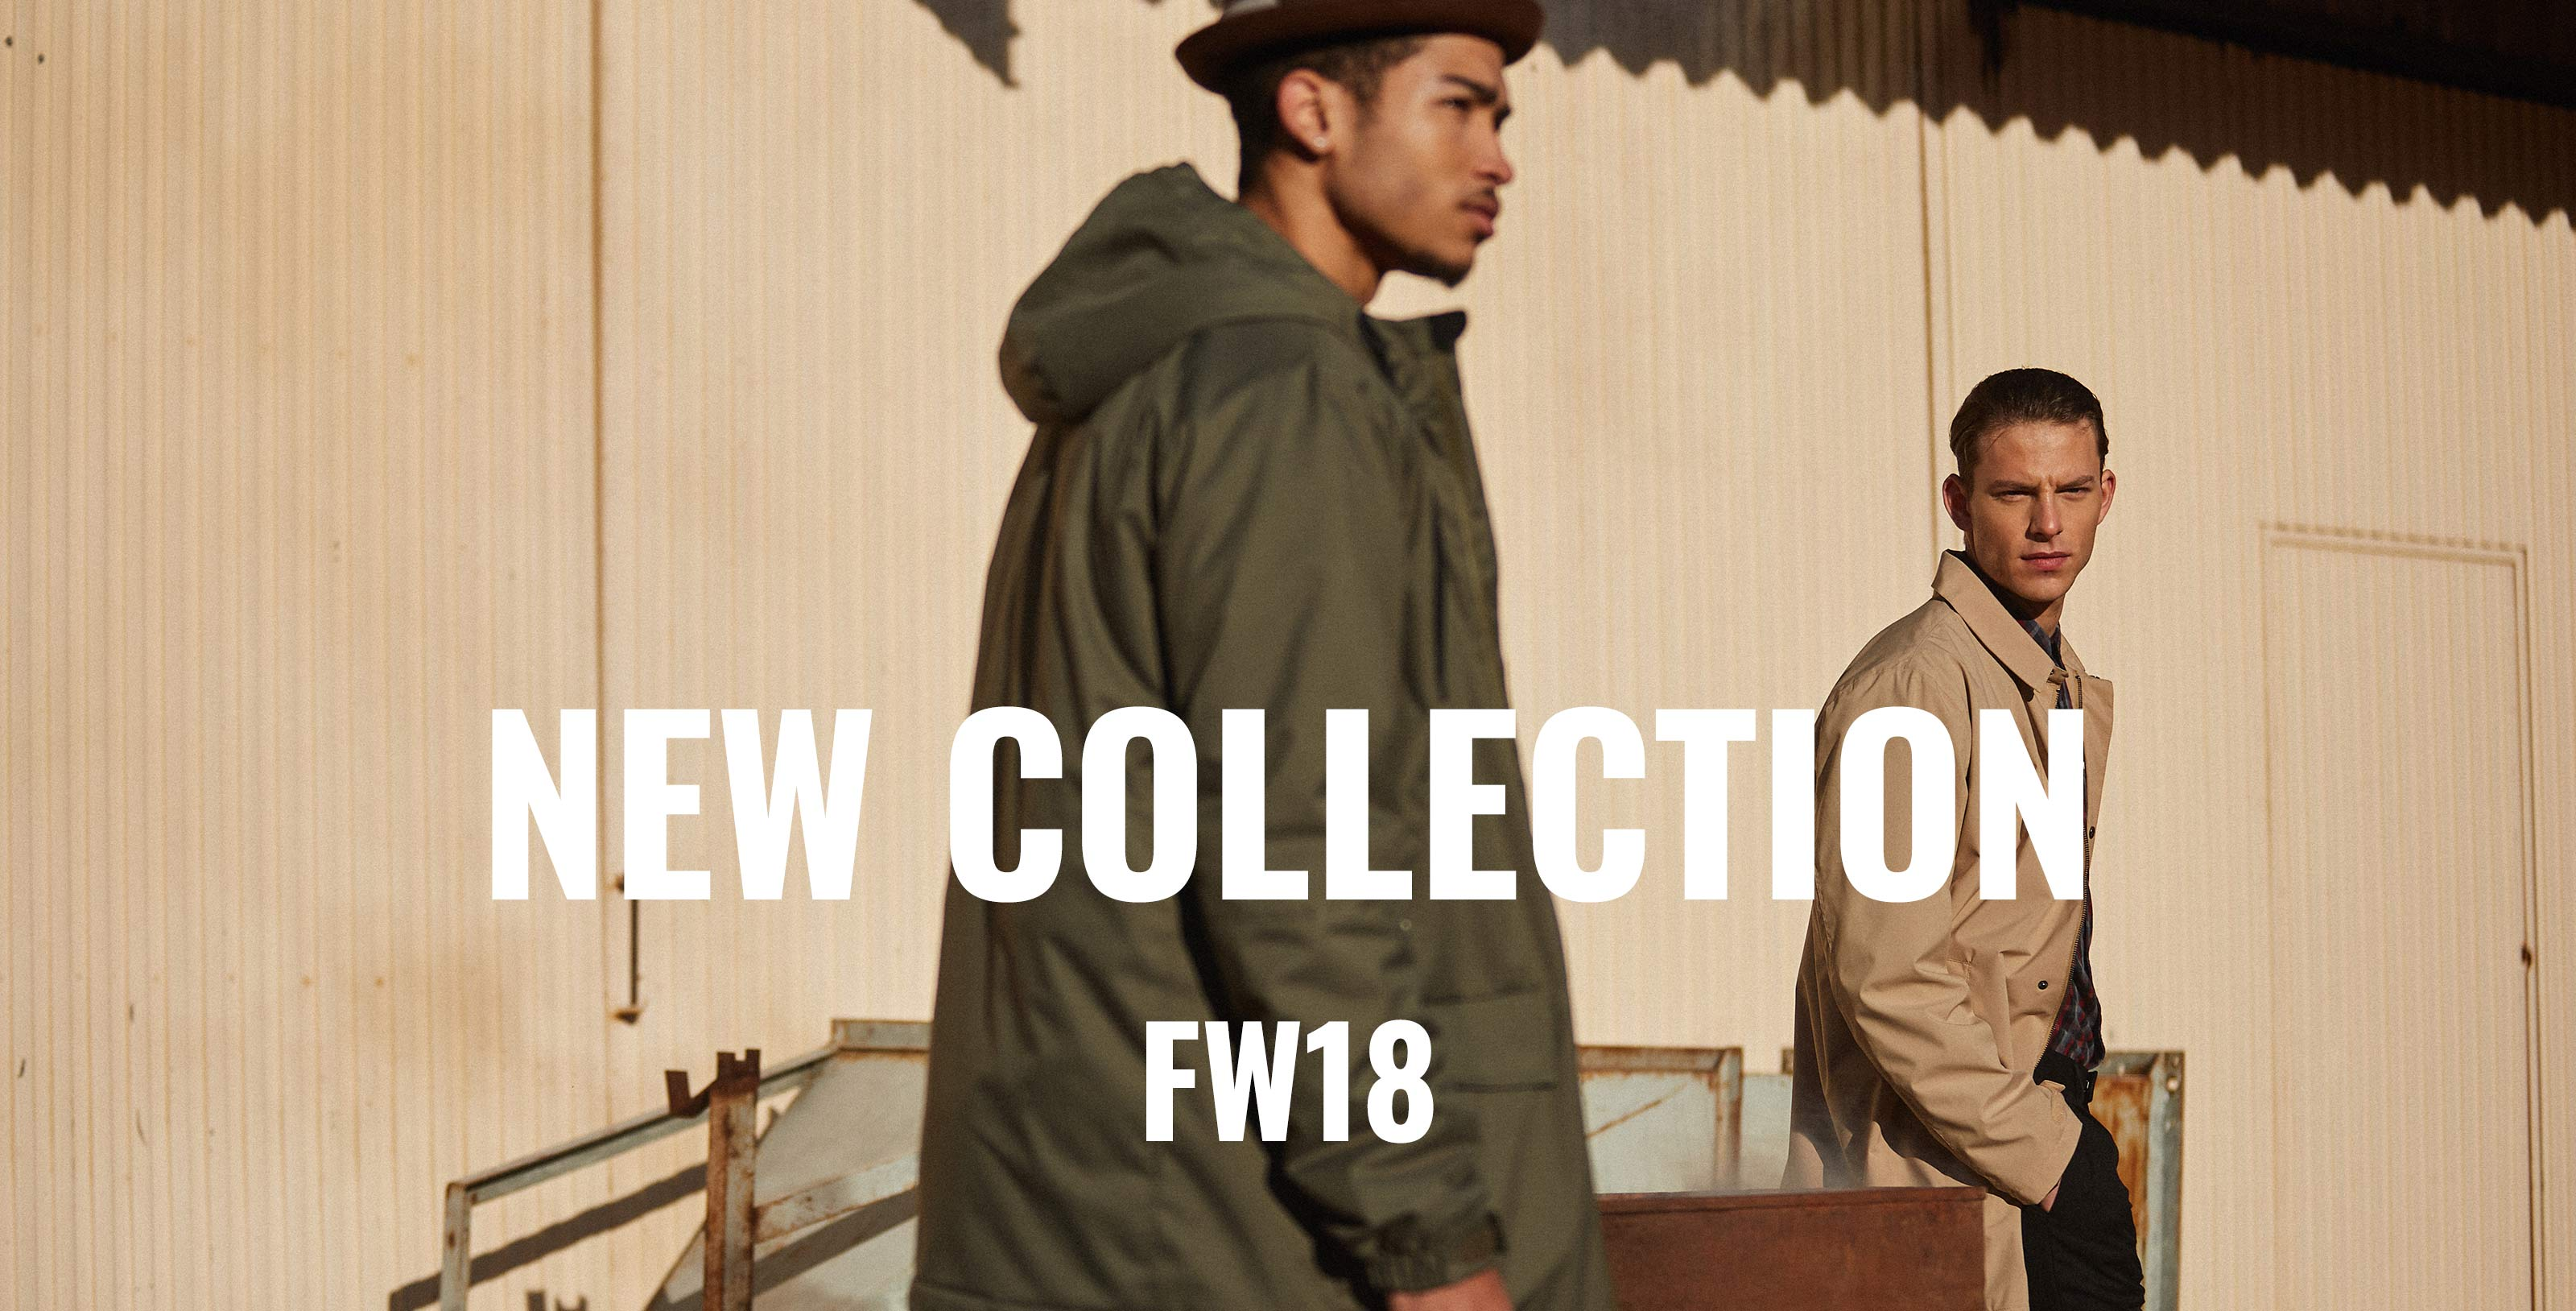 Tiwel New Collection FW18